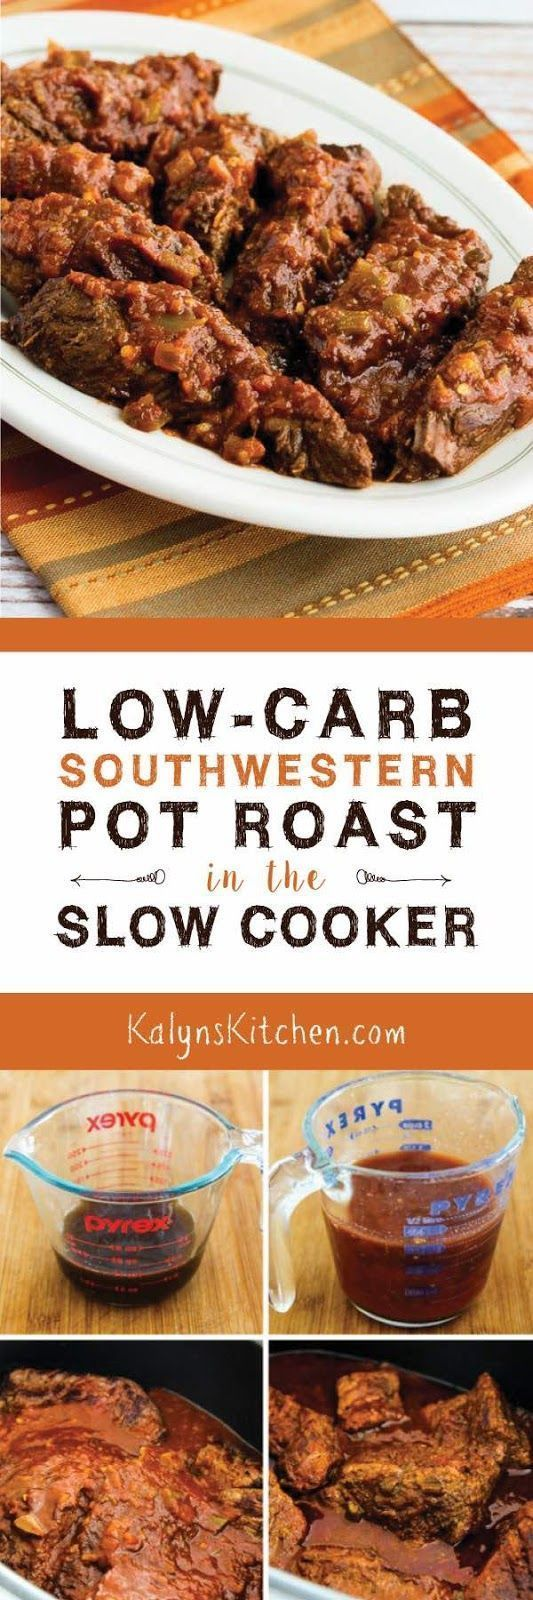 Low-Carb Southwestern Pot Roast in the Slow Cooker is an easy recipe with only 5 ingredients, and it's also gluten-free, dairy-free, and can be Paleo with the right salsa. [found on http://KalynsKitchen.com]